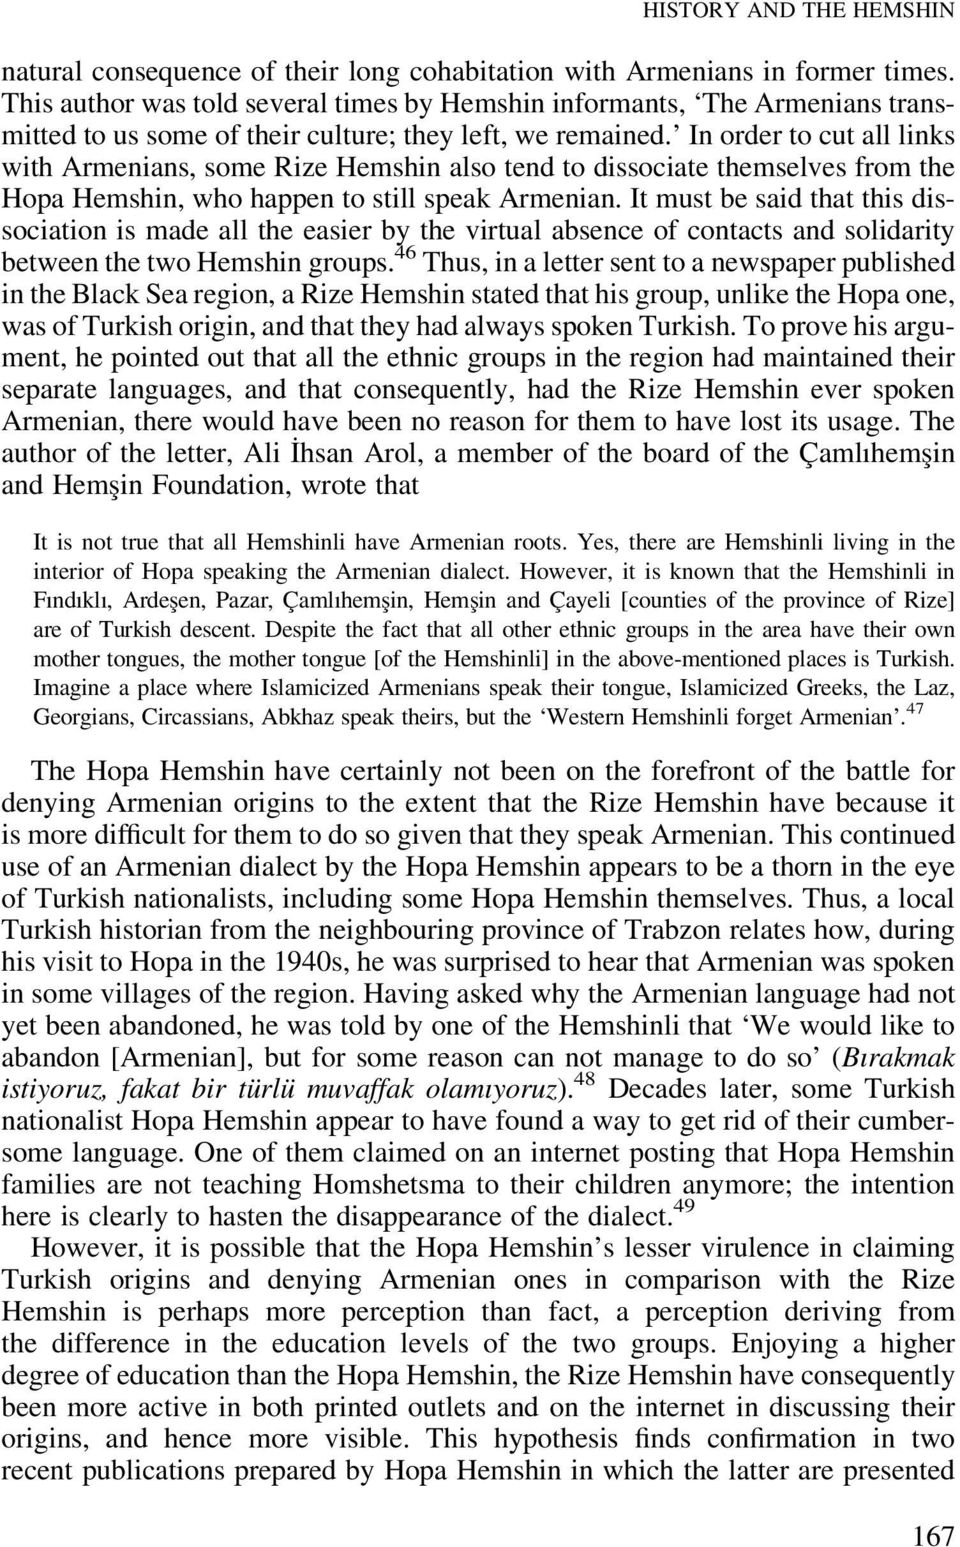 In order to cut all links with Armenians, some Rize Hemshin also tend to dissociate themselves from the Hopa Hemshin, who happen to still speak Armenian.